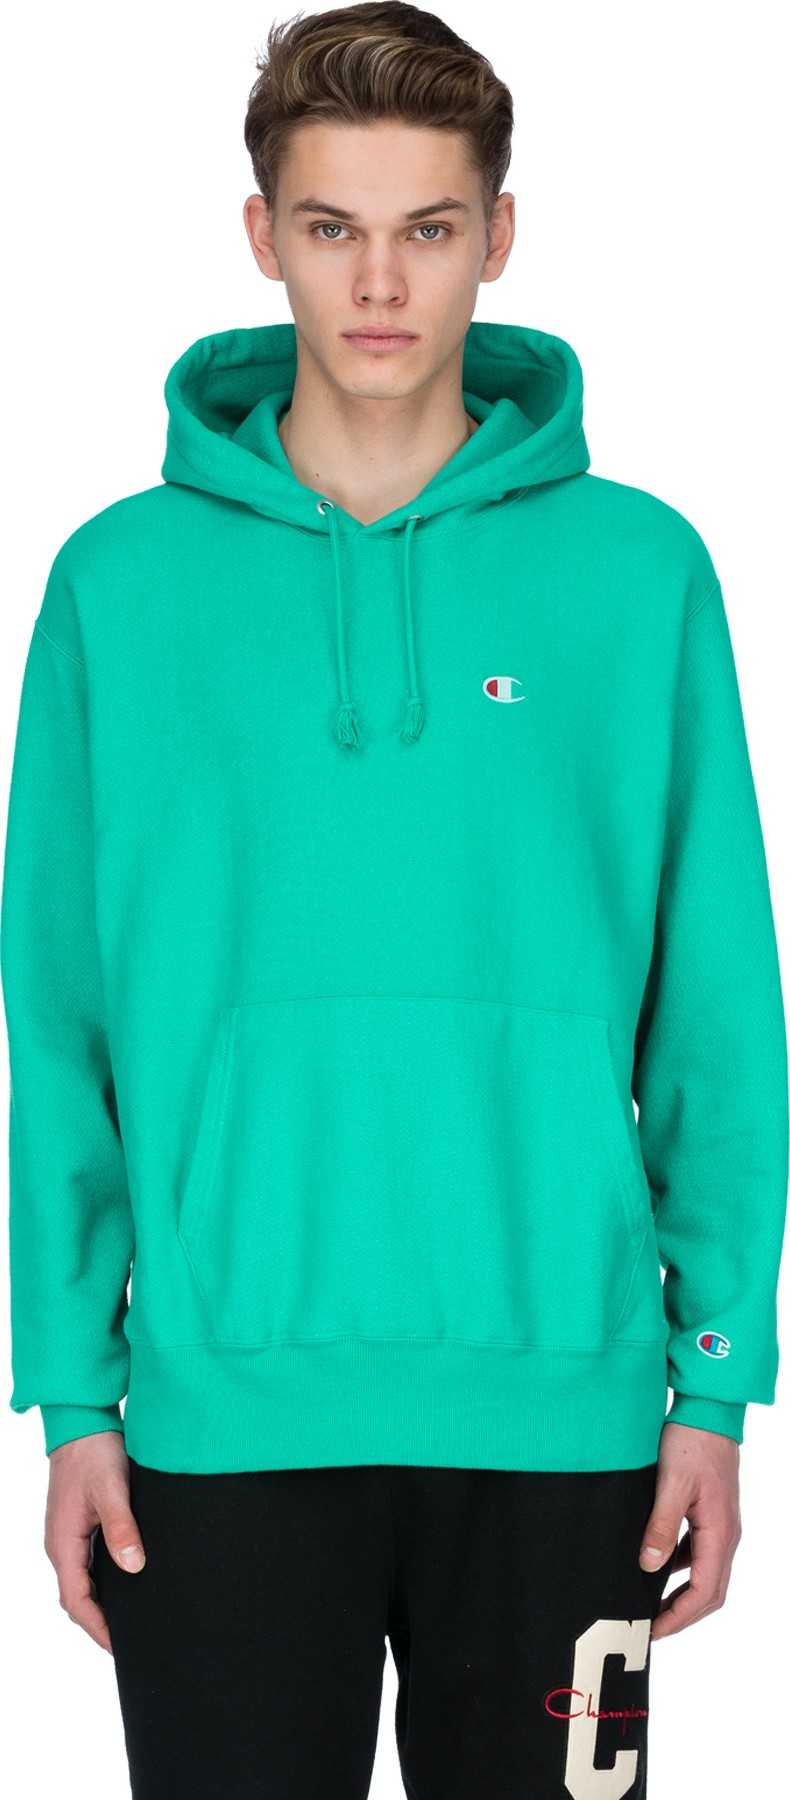 94f52841e1f4 Champion  Reverse Weave Pigment Dyed Pullover Hoodie - Vivid Teal